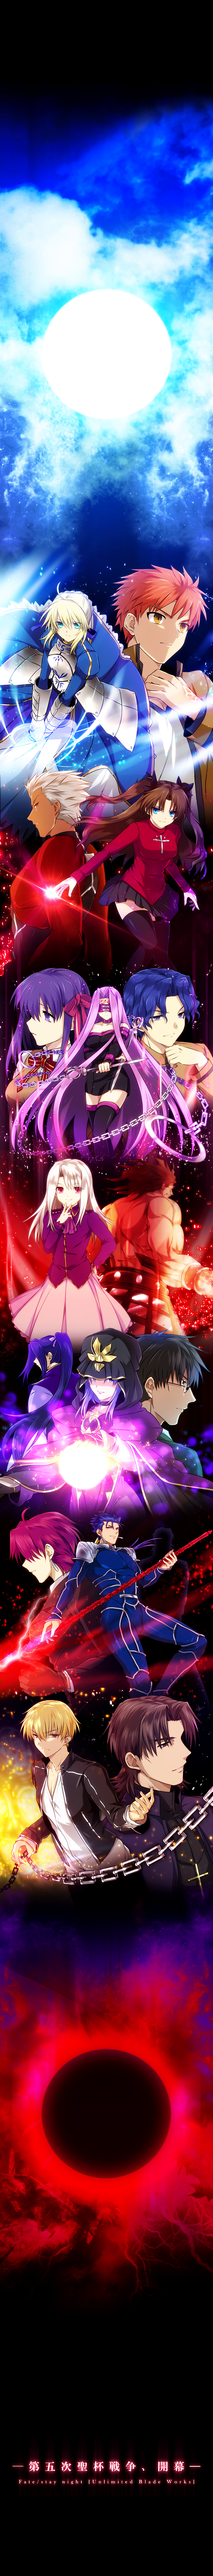 "Source: ""Fate/Stay Night"" 